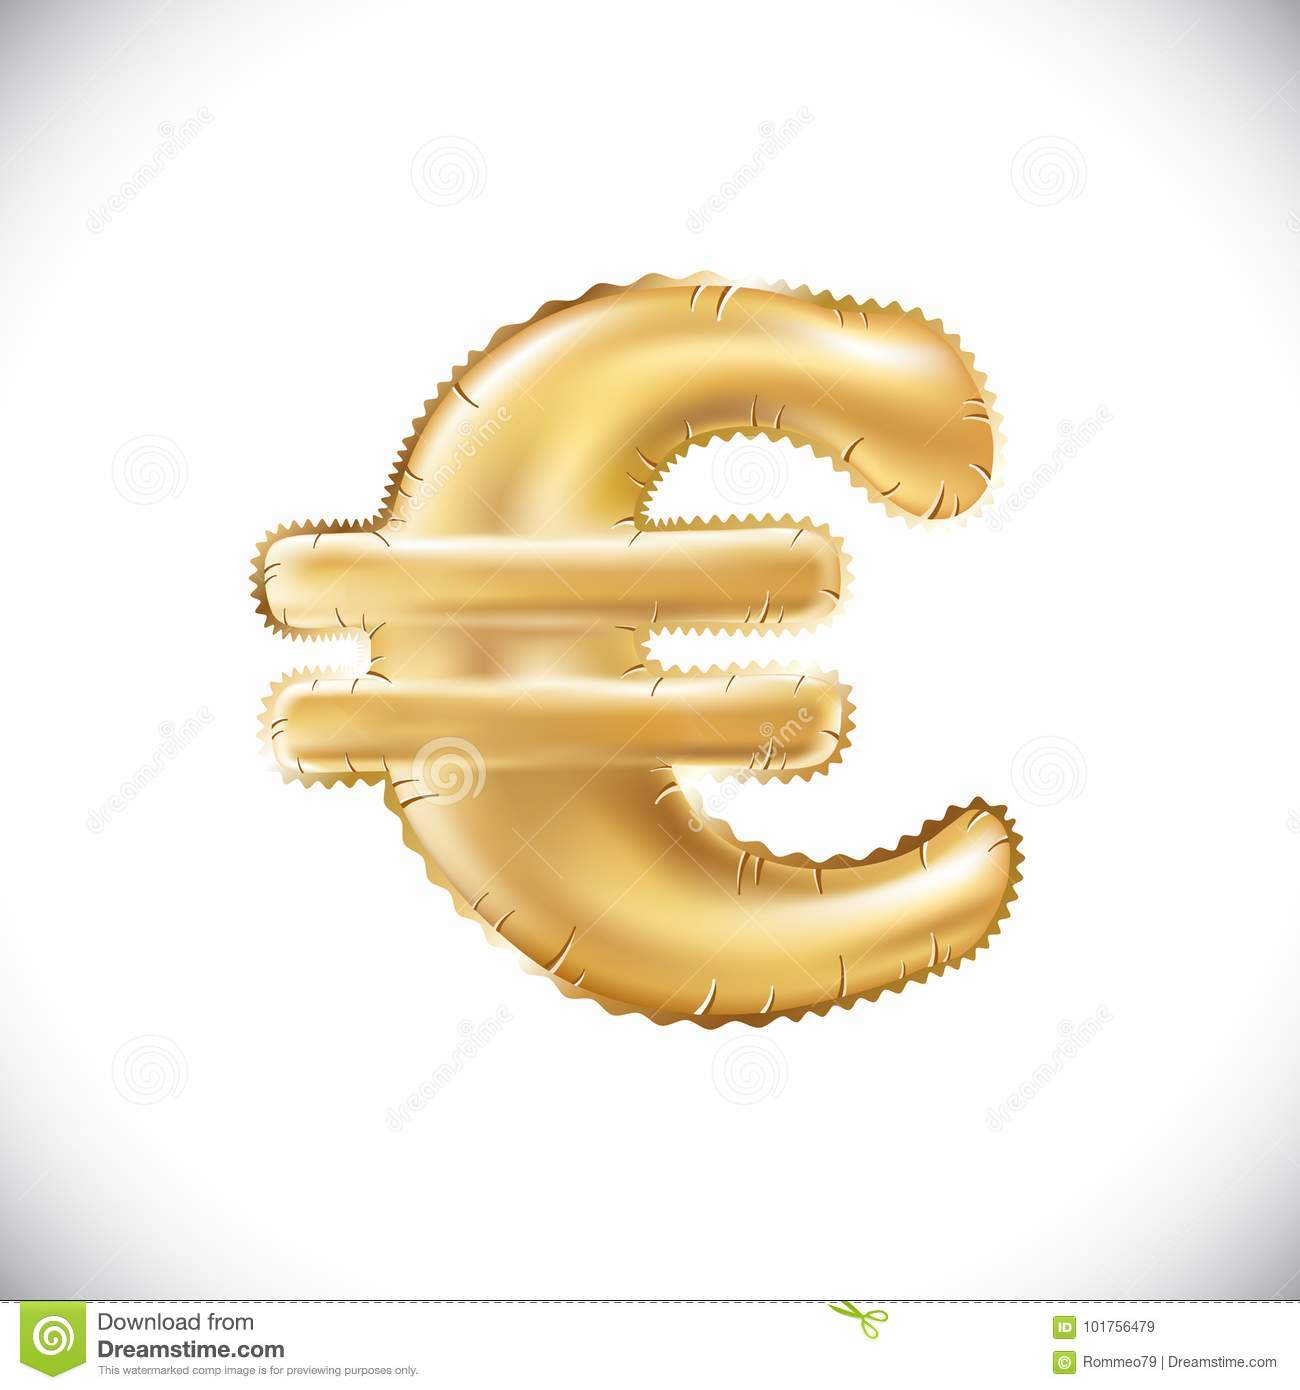 Vector Balloon Euro Currency Symbol Realistic 3d Isolated Gold